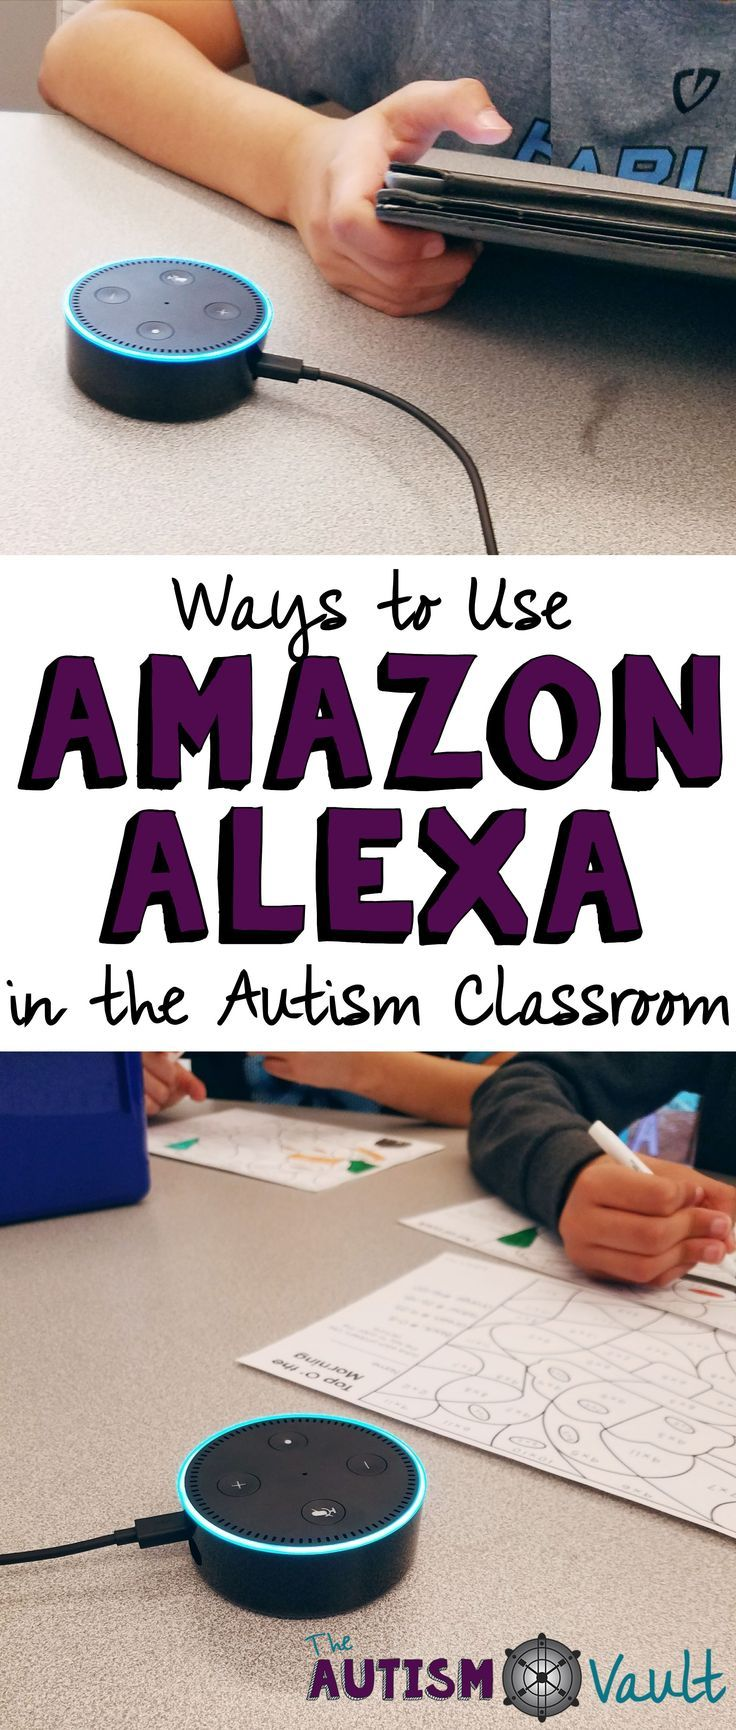 Amazon Alexa is a great tool to use in the autism classroom to teach communication and executive functioning skills. Read about how I use this powerful tool with my students with autism.